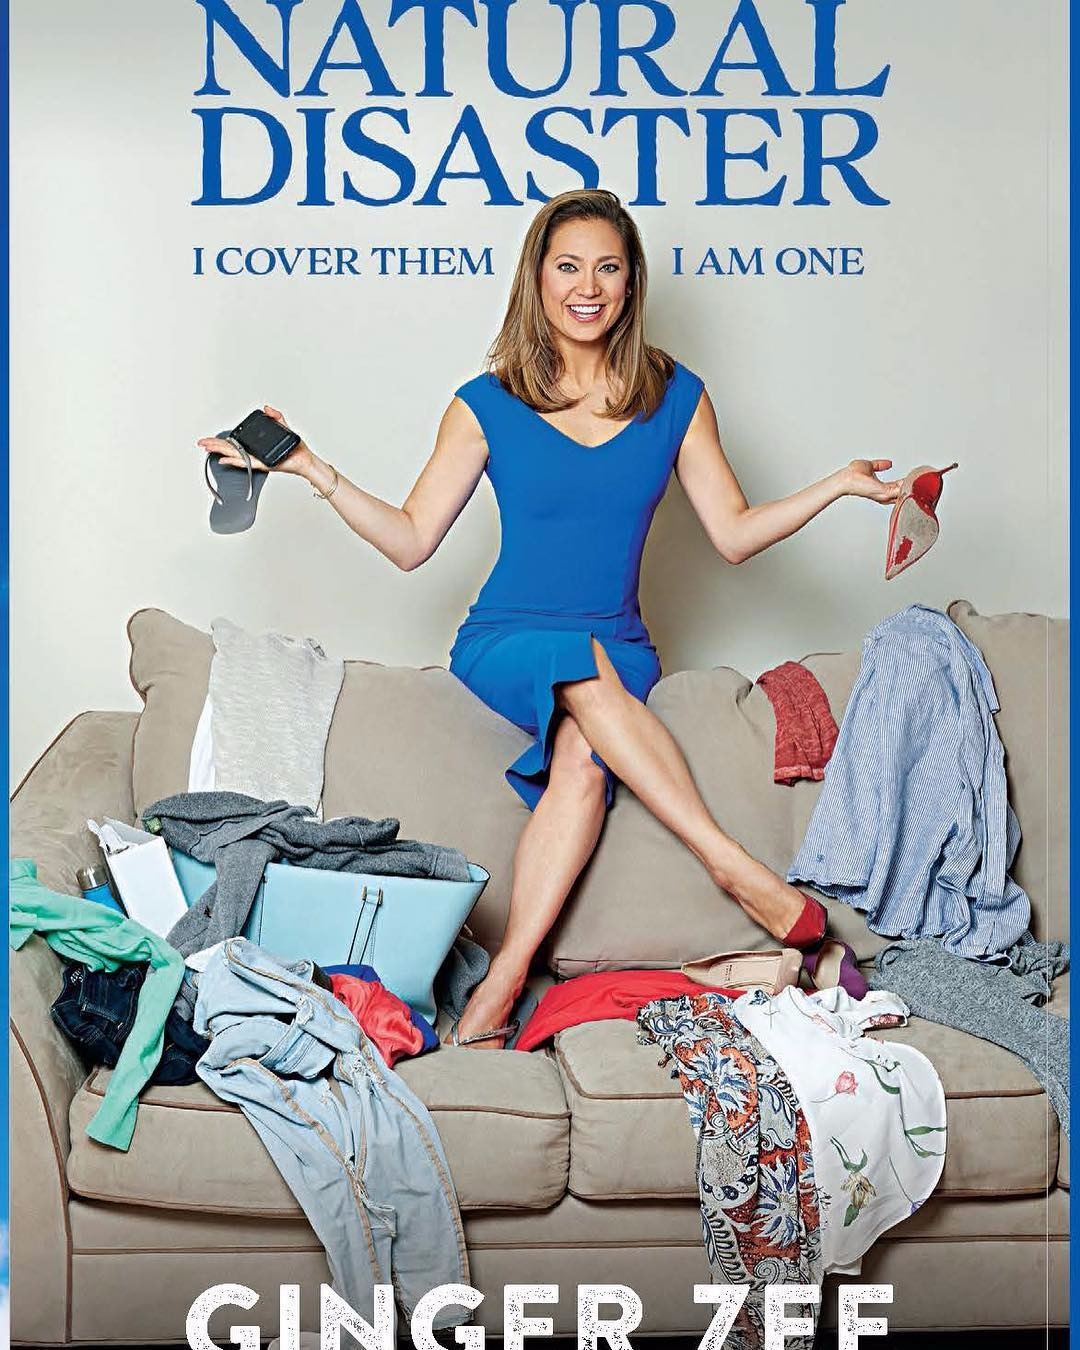 This is the cover of Ginger Zee's book where she opens up about the sturggles of mental illness. Ginger Zee is wearing a blue dress.